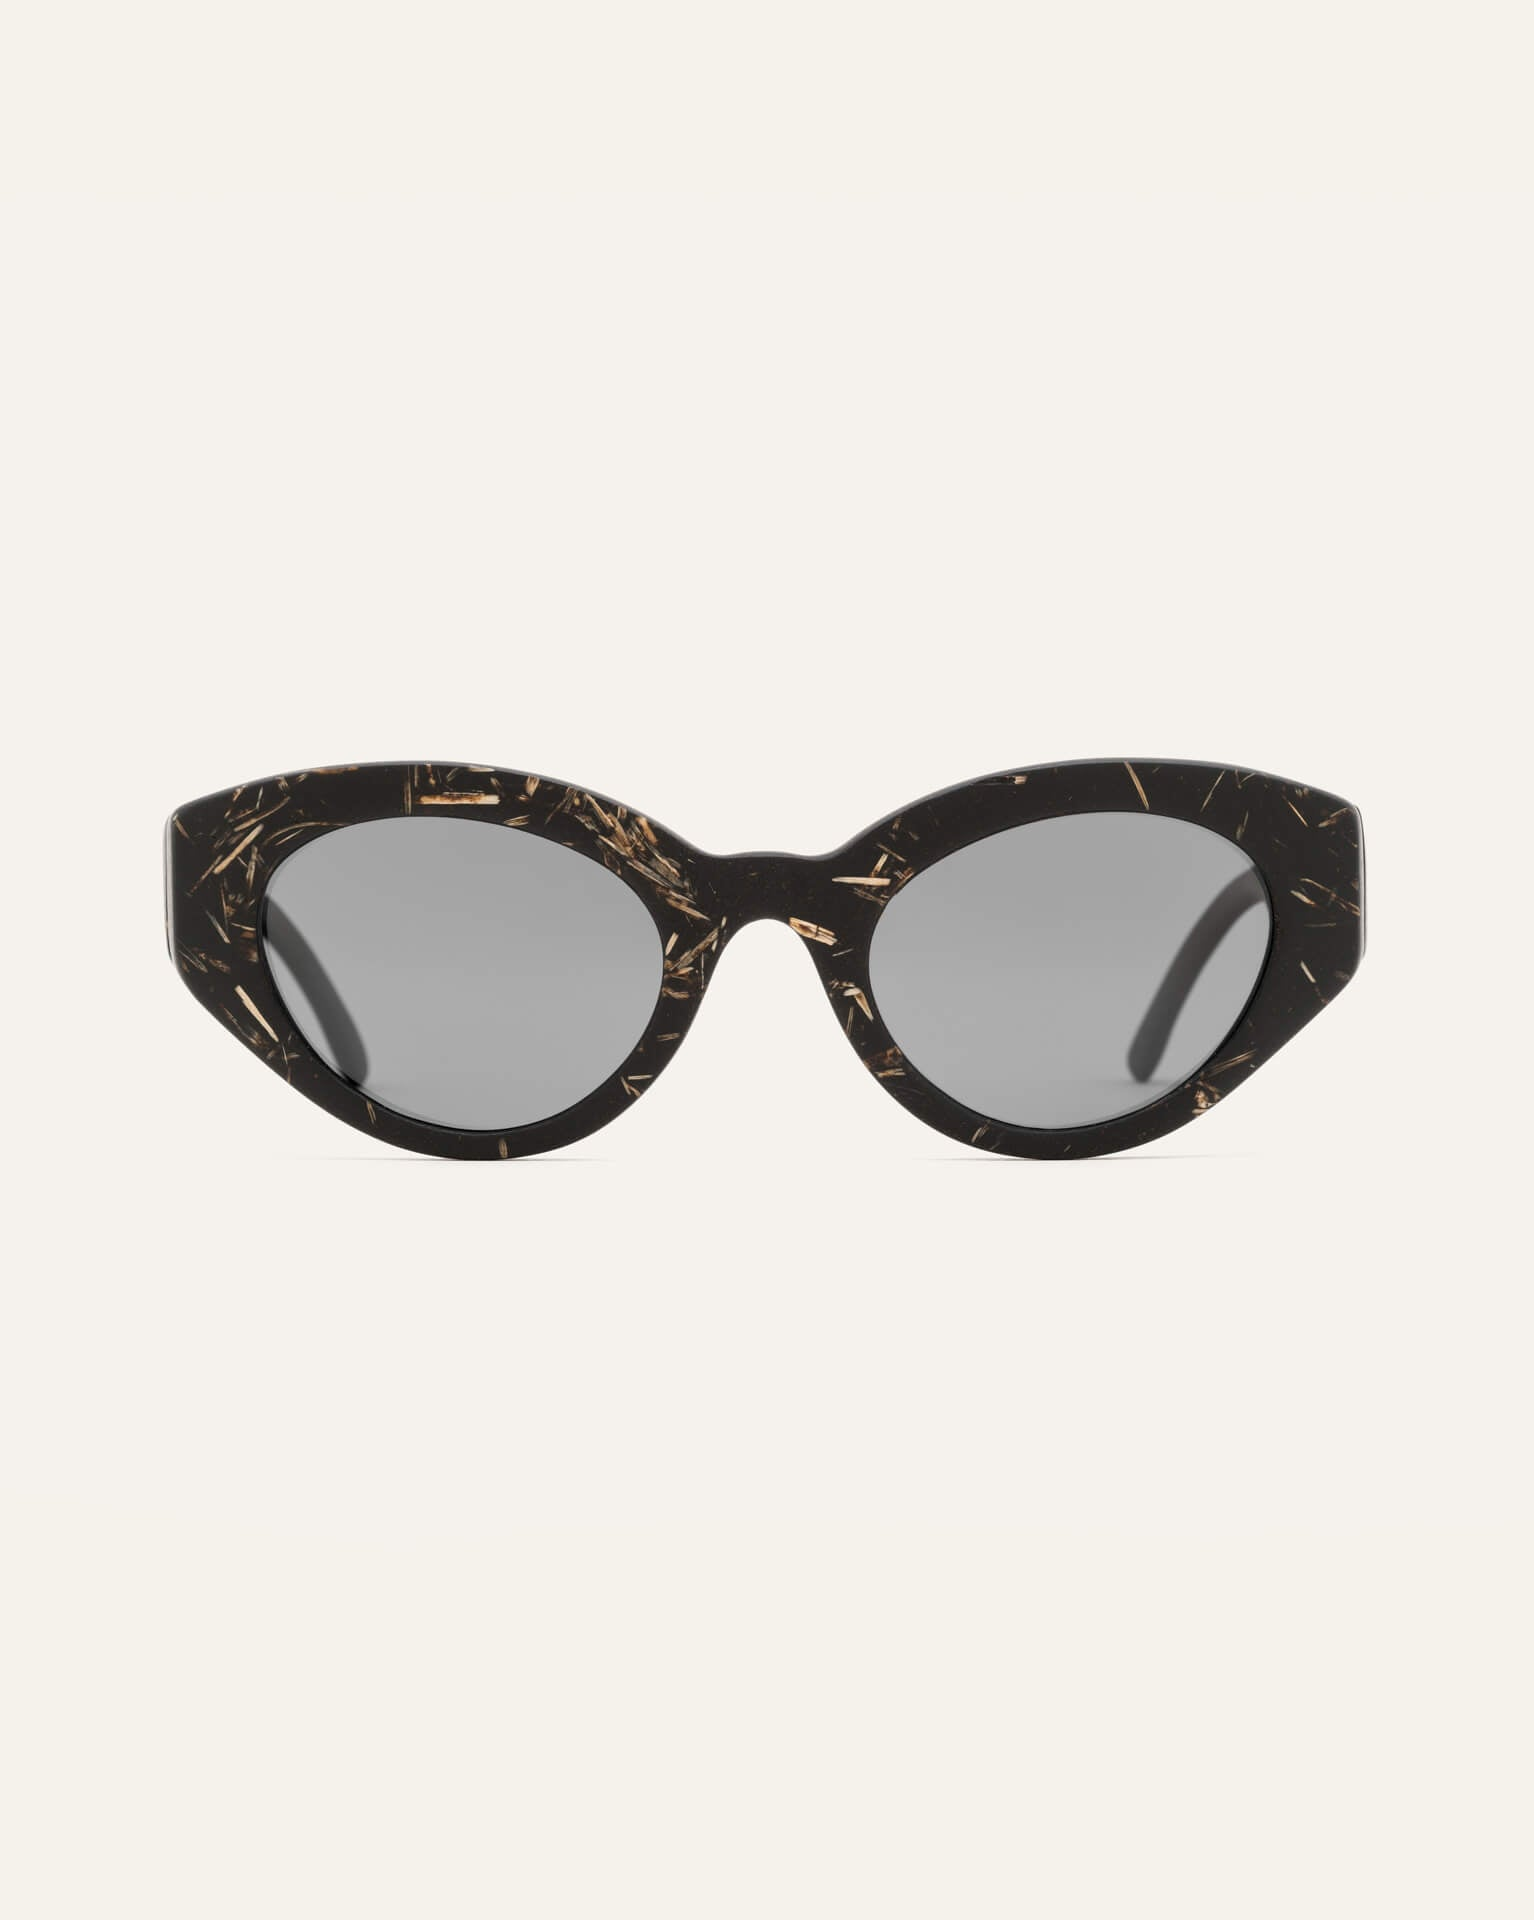 cat-eye sunglasses with gray lenses